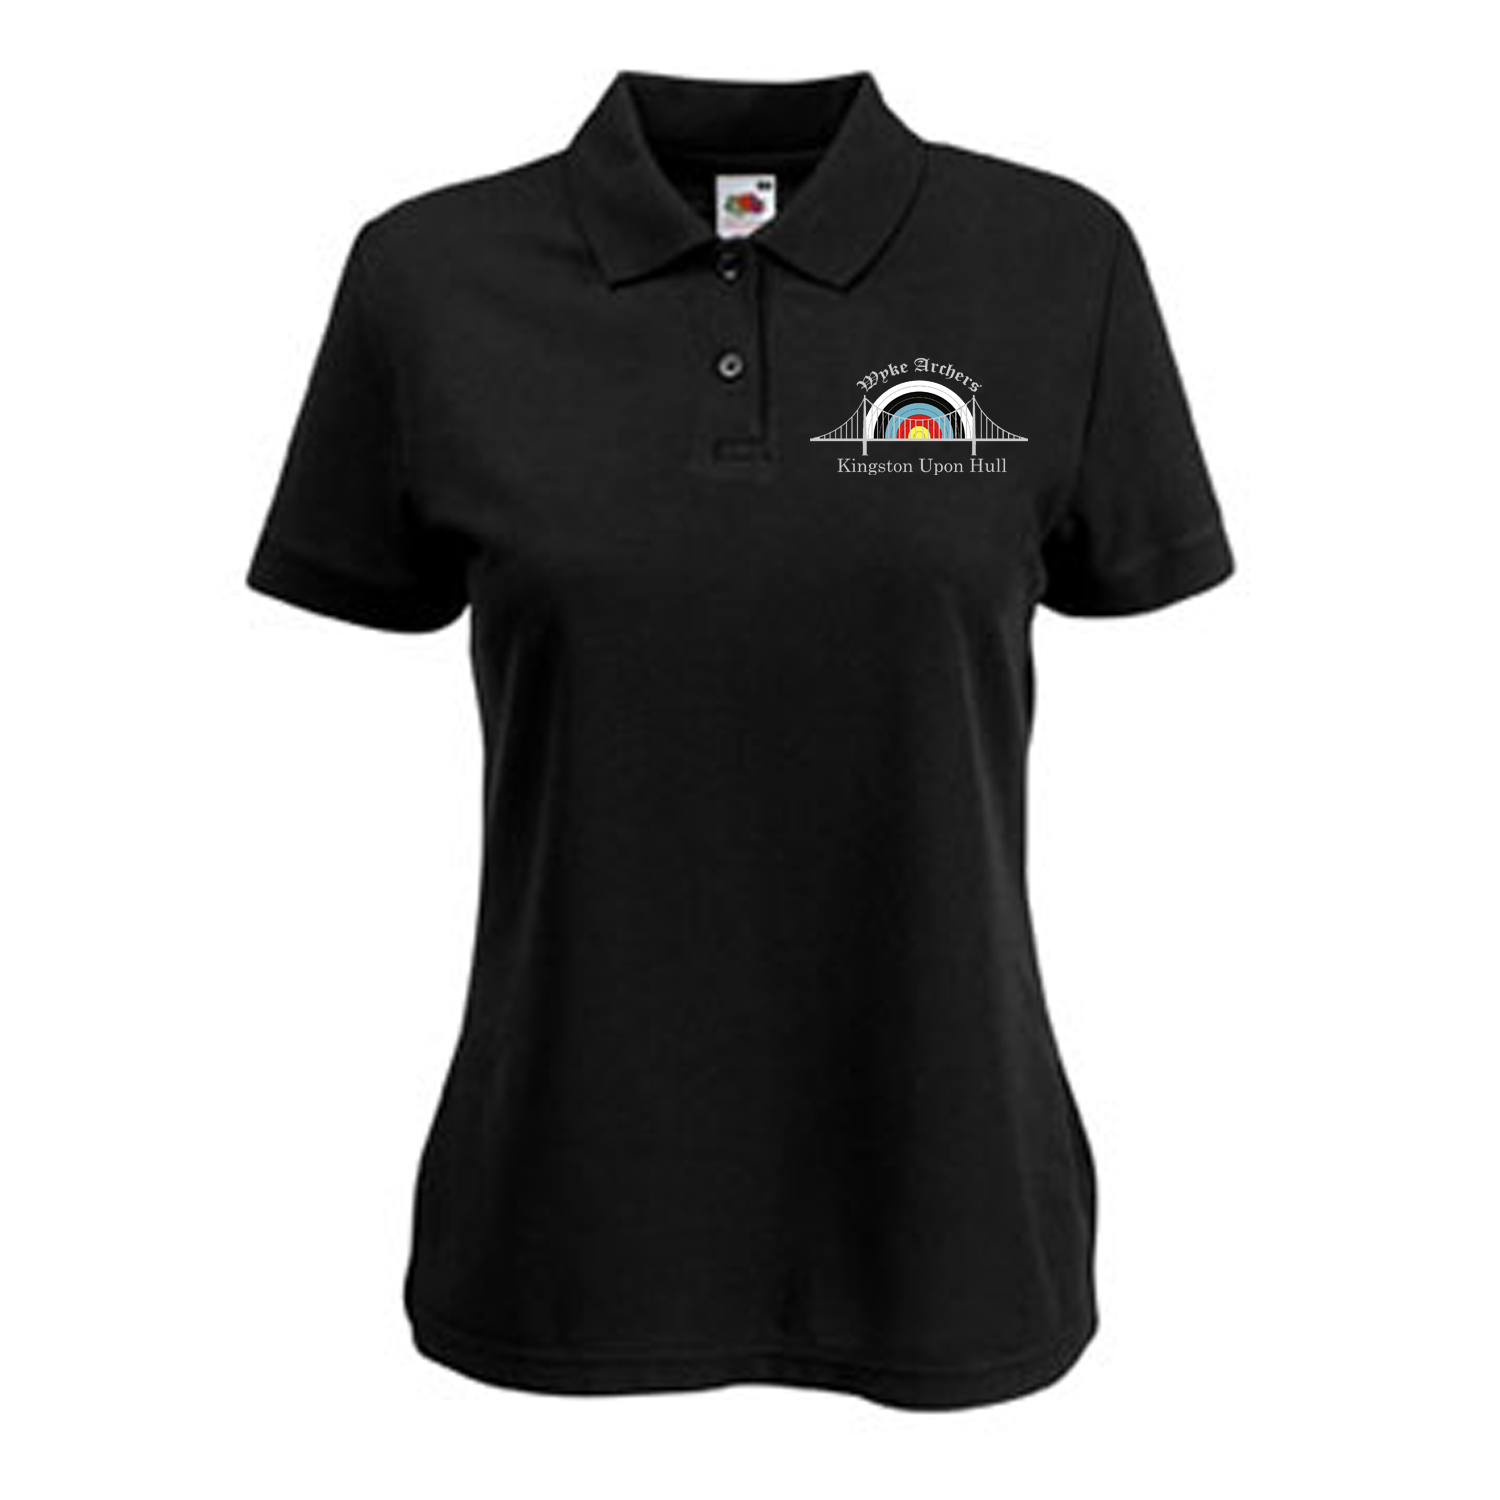 63212: Ladies Standard Polo Shirt (Fruit Of The Loom)